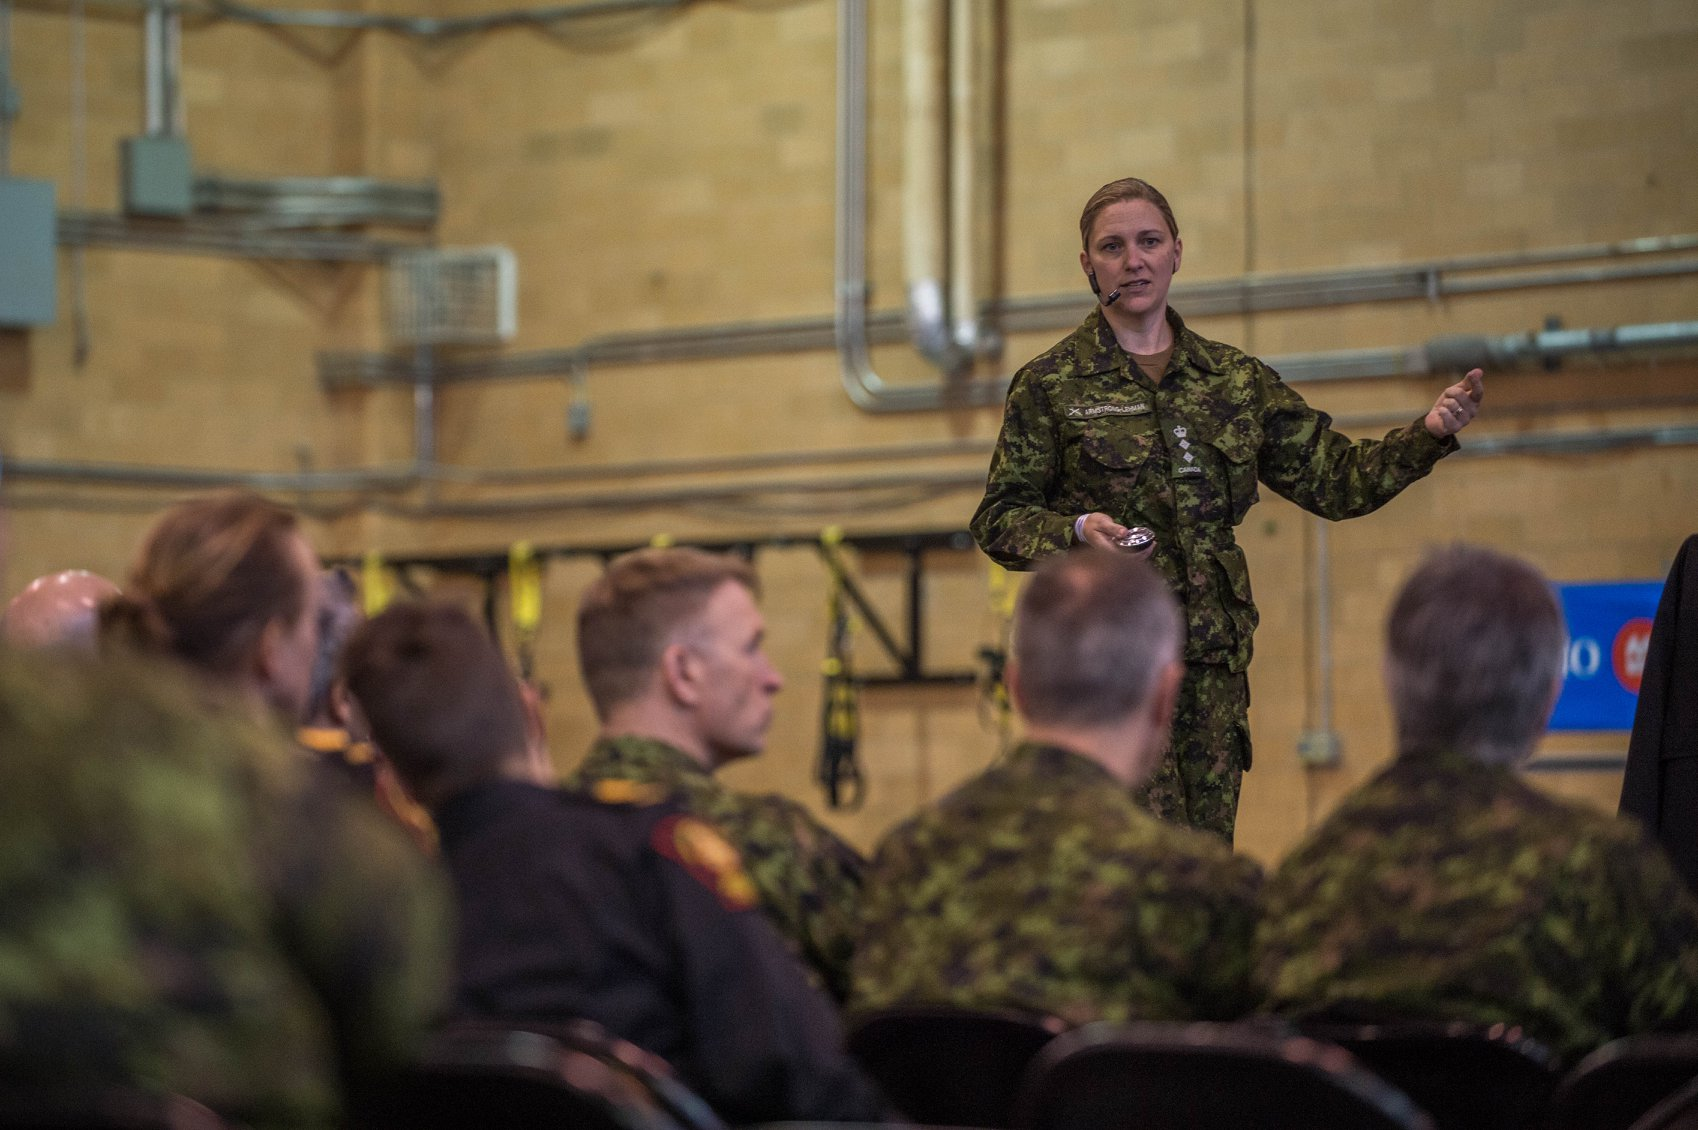 Canadian Forces IWD event